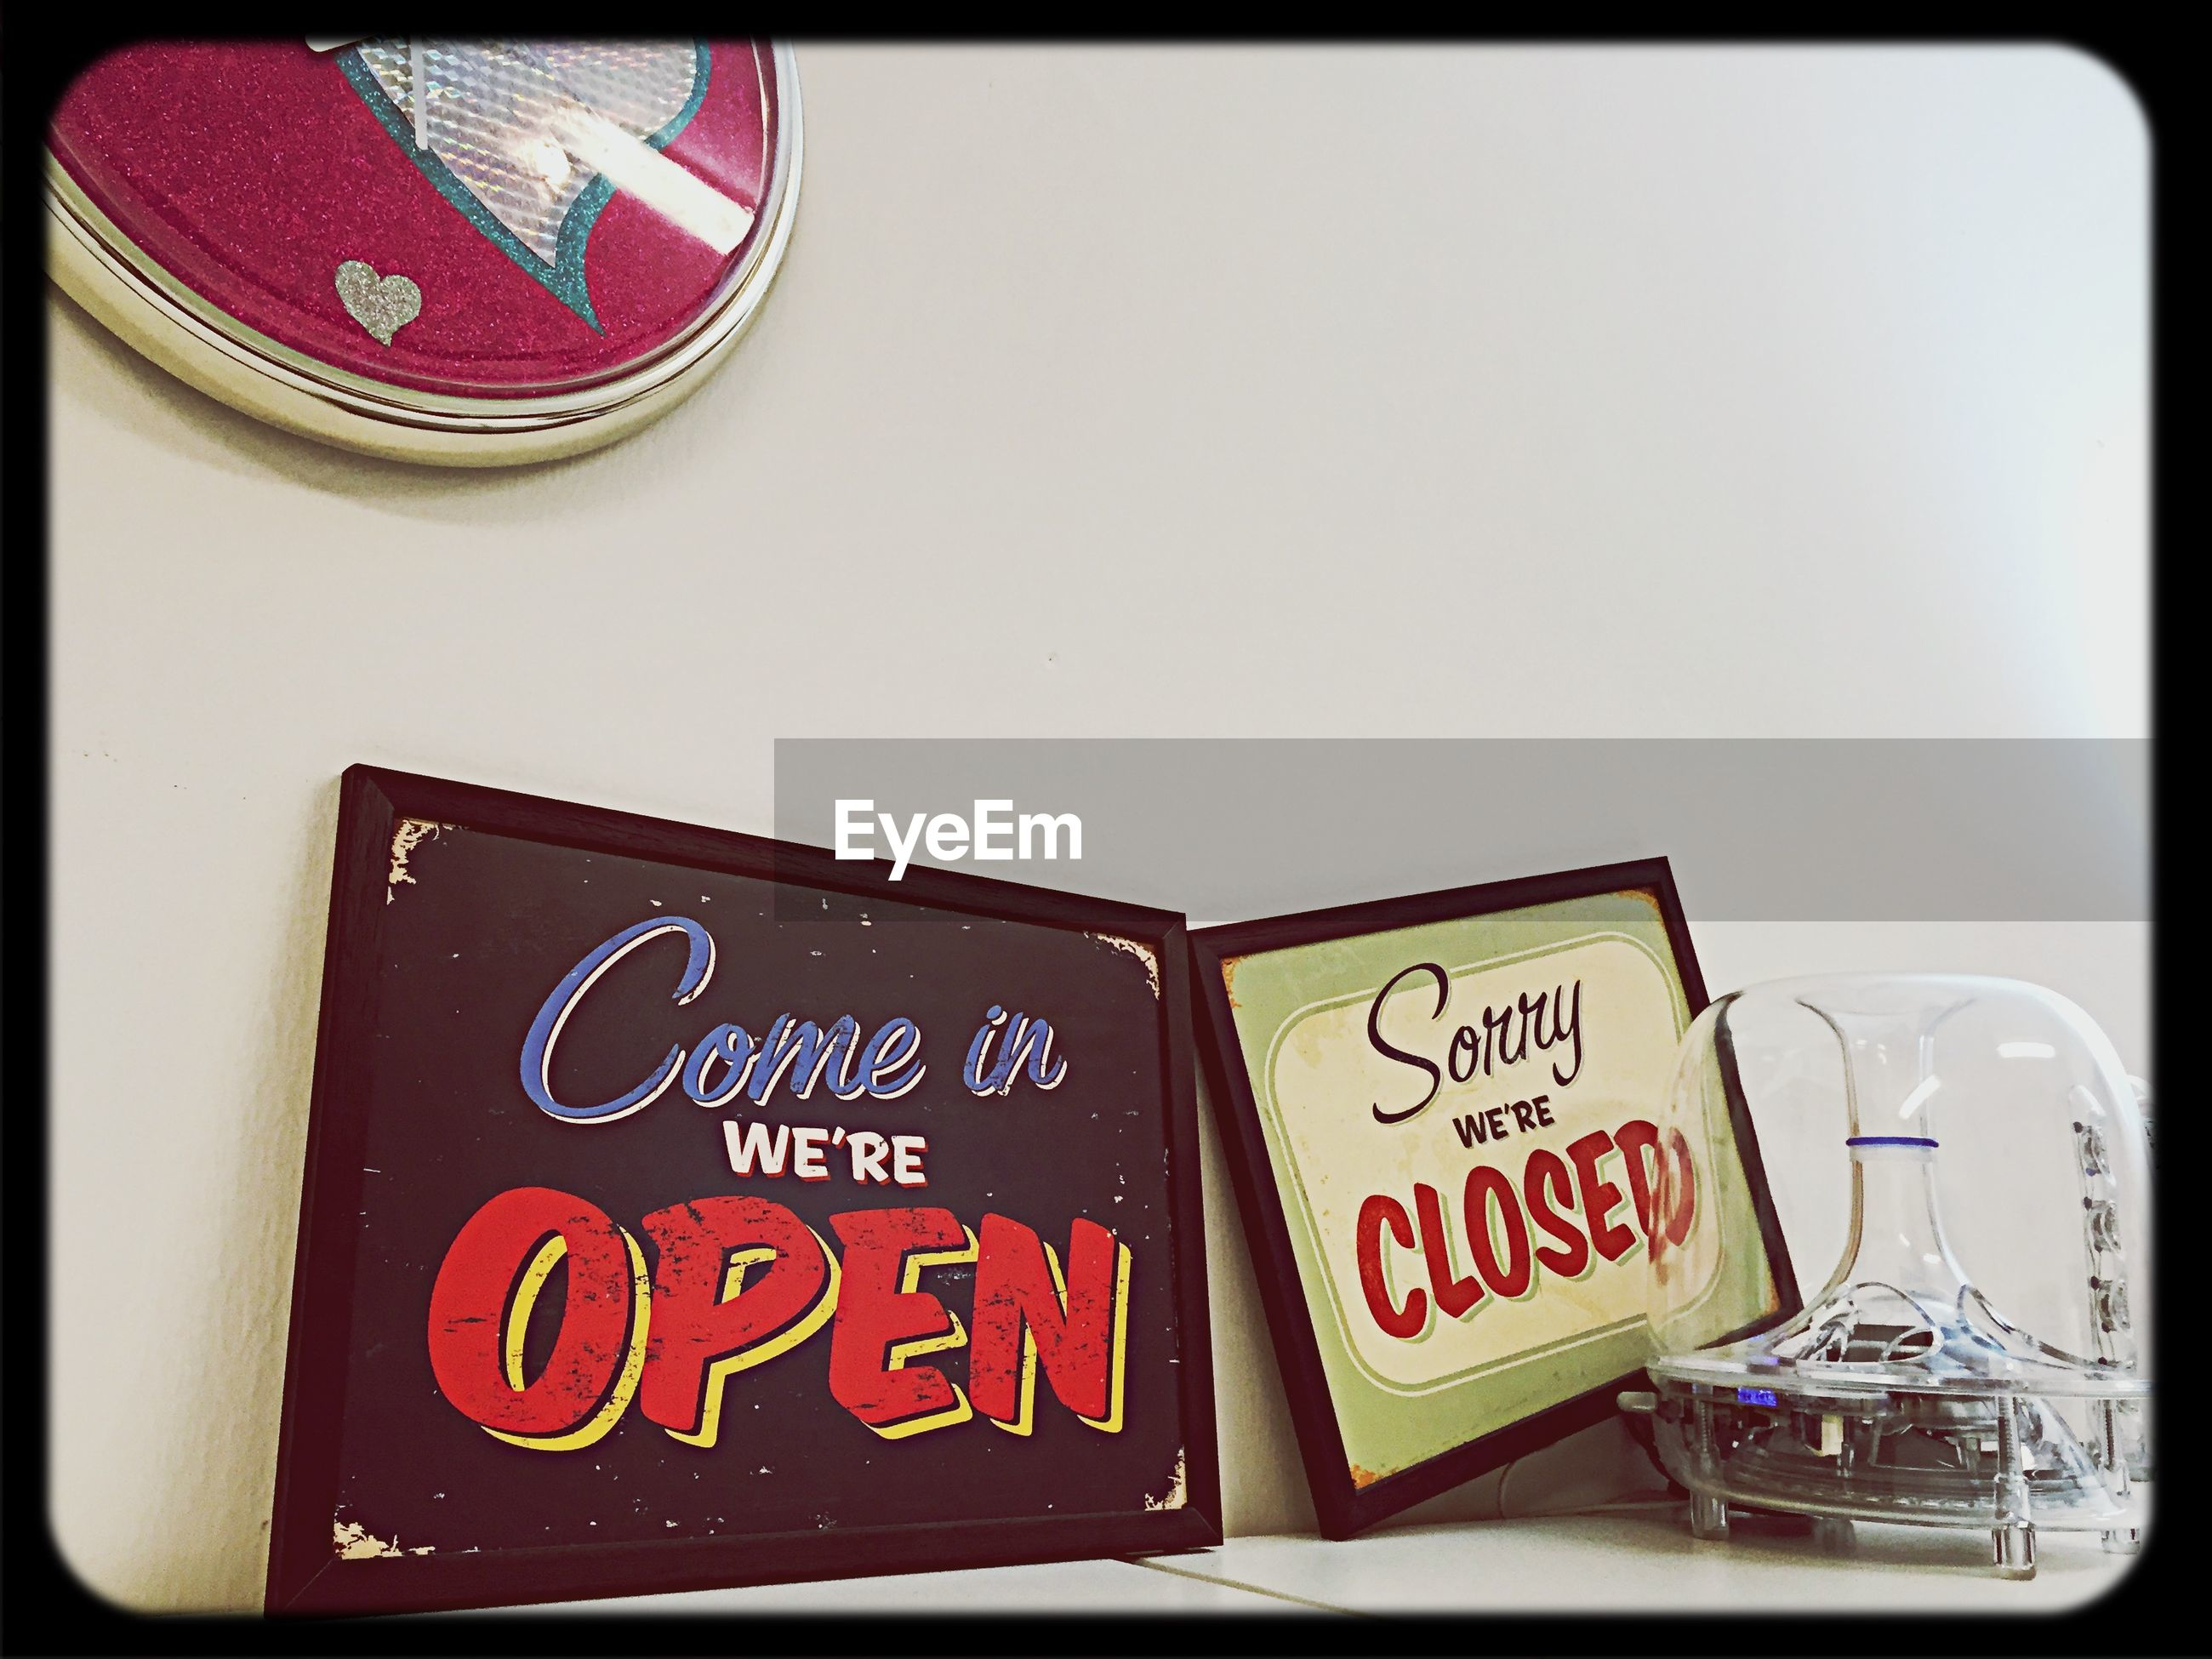 Open and closed signs on table by wall